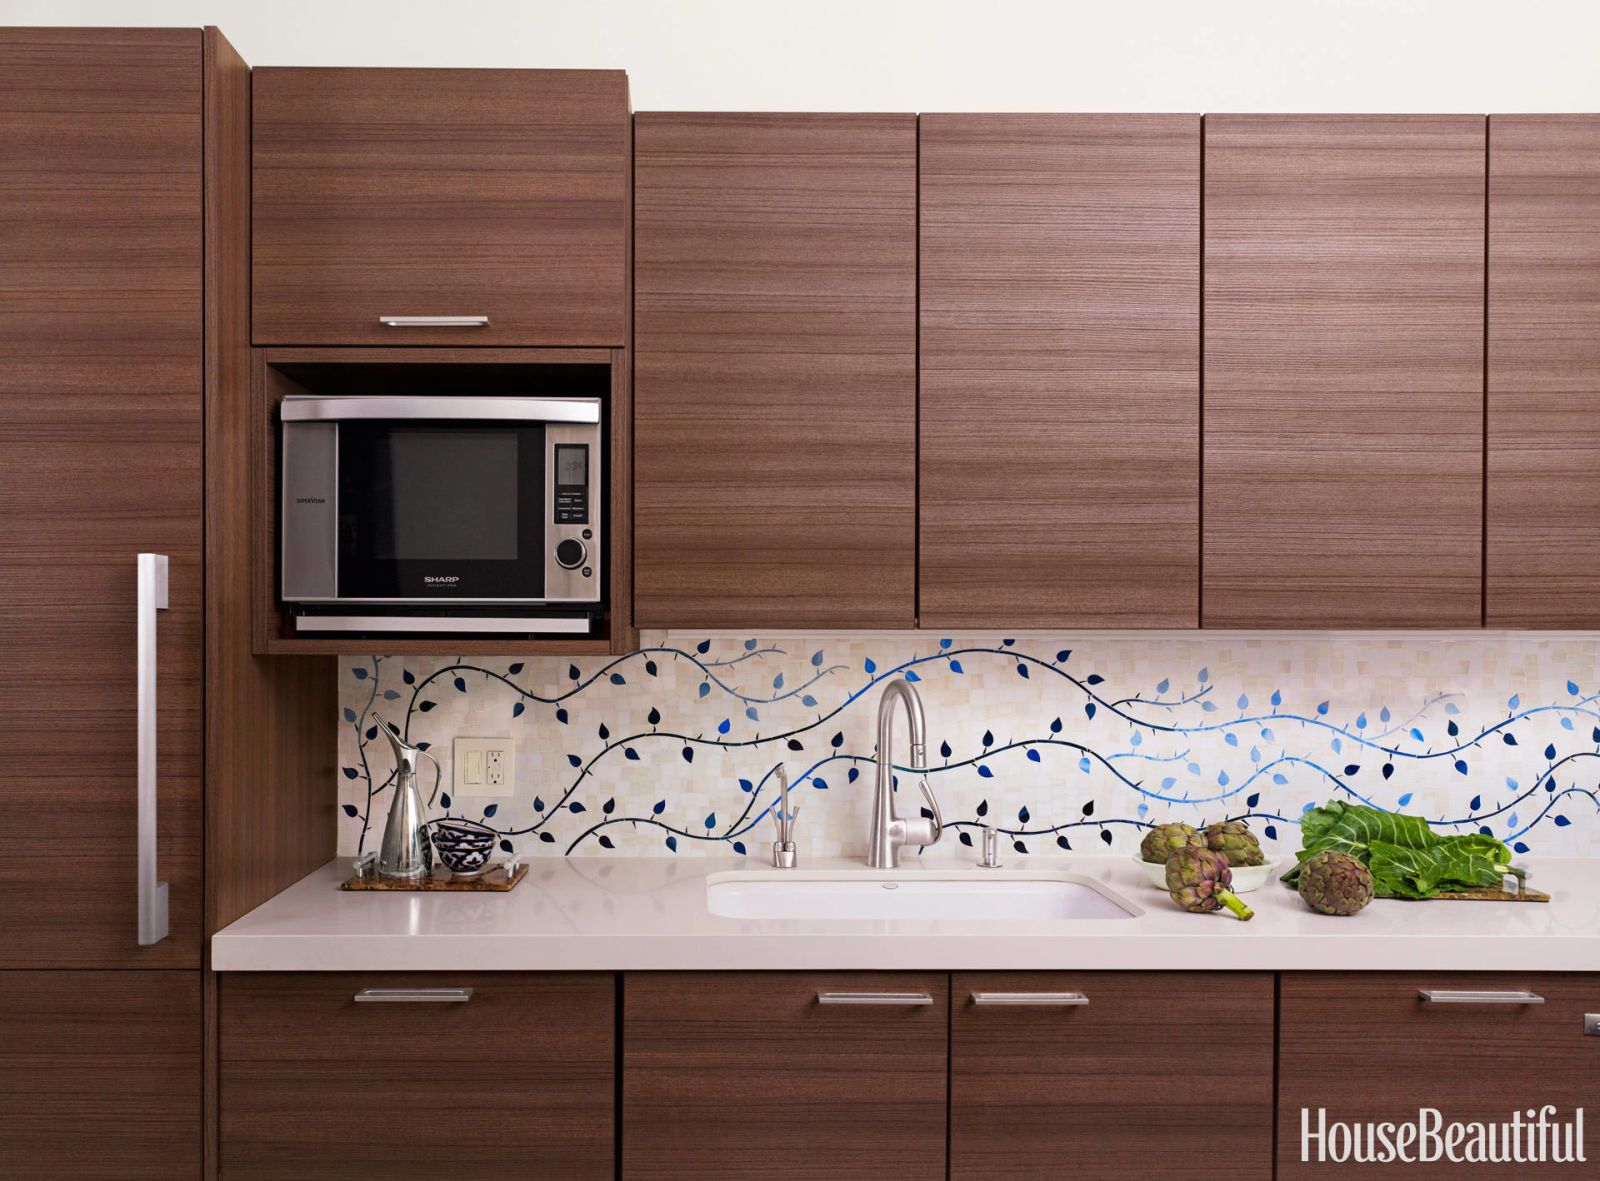 Tile Design In Kitchen